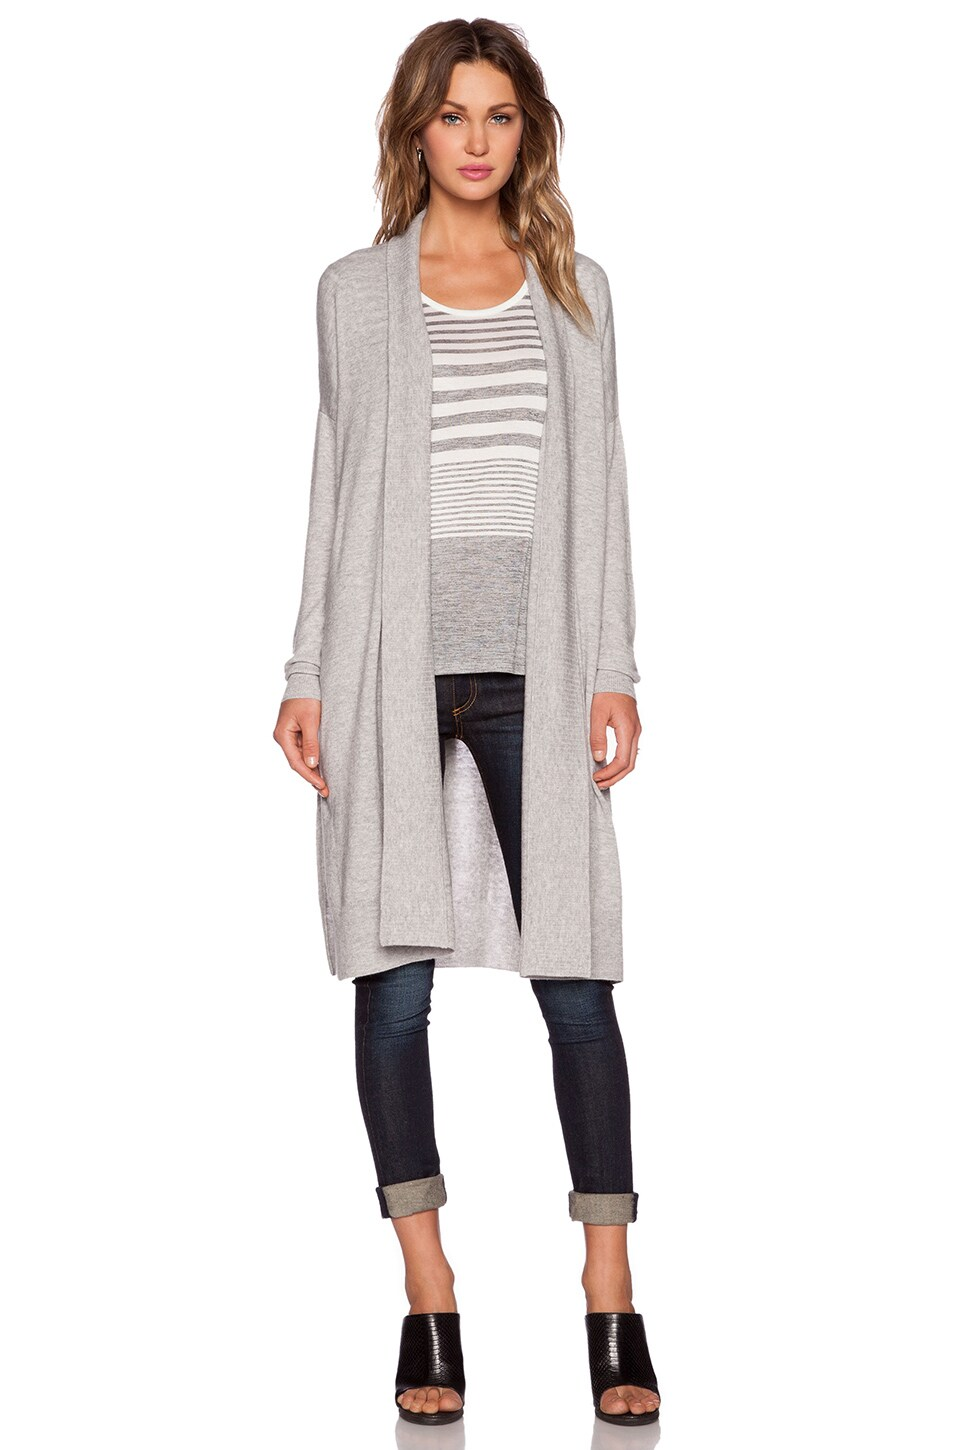 Vince Oversize Cardigan in Heather Steel